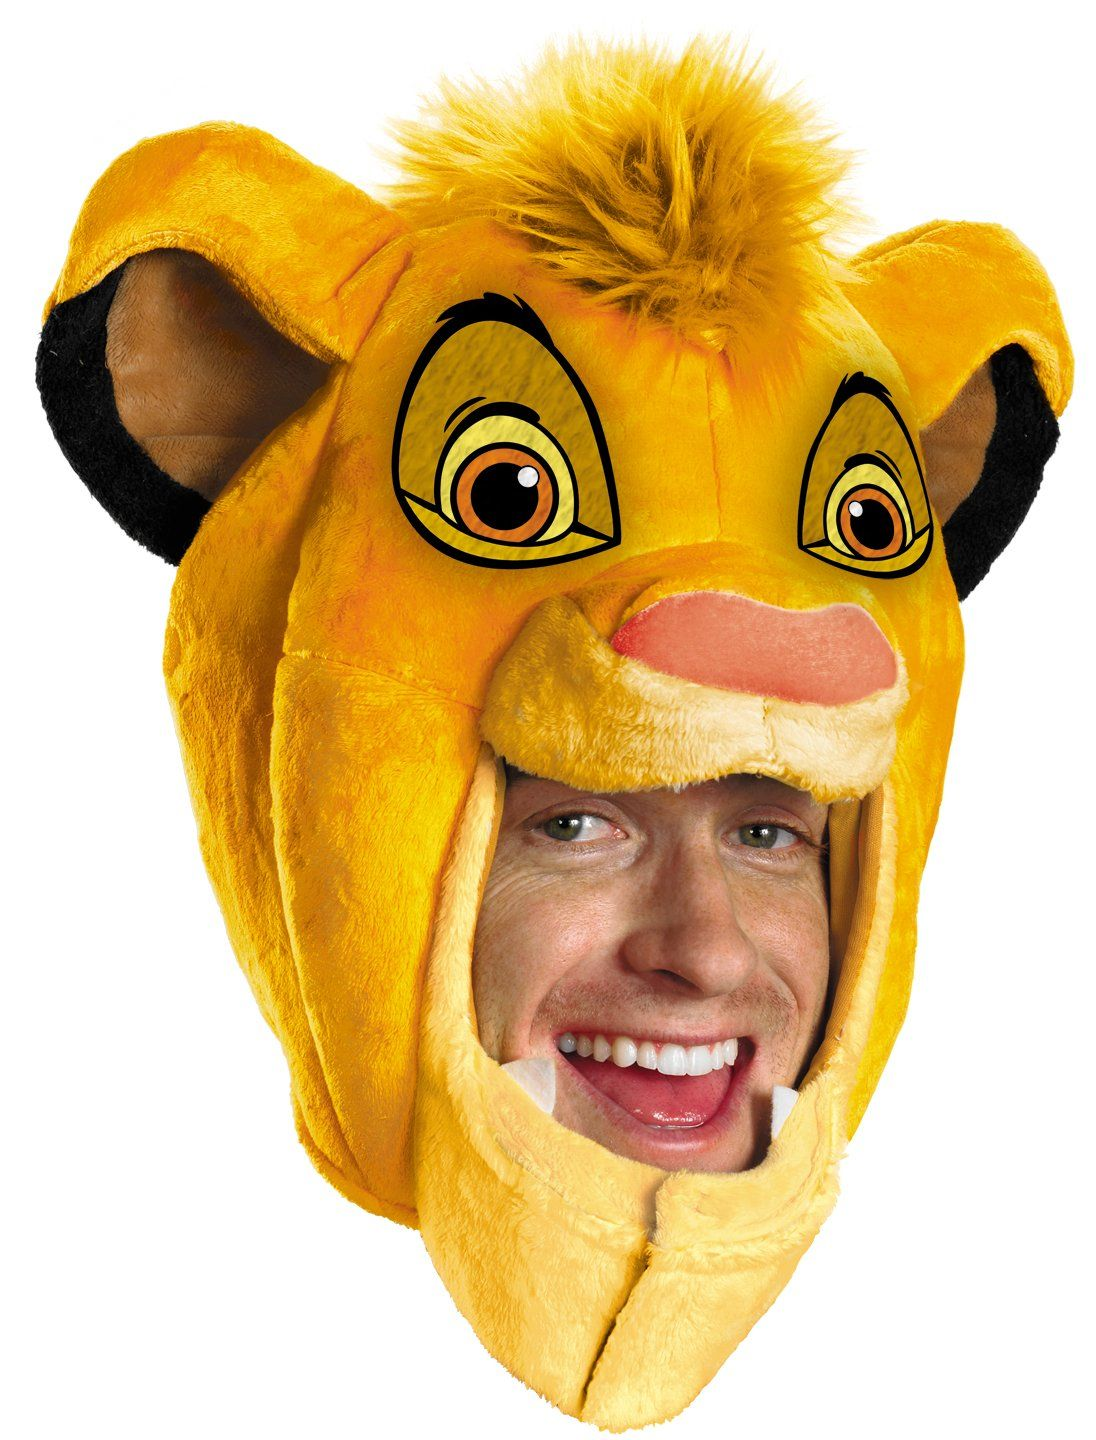 324edfb5d The Lion King - Simba Headpiece (Adult) Description: I just can't WAIT to  be king!! Become the future king of Pride Rock with The Lion King - Simba  ...